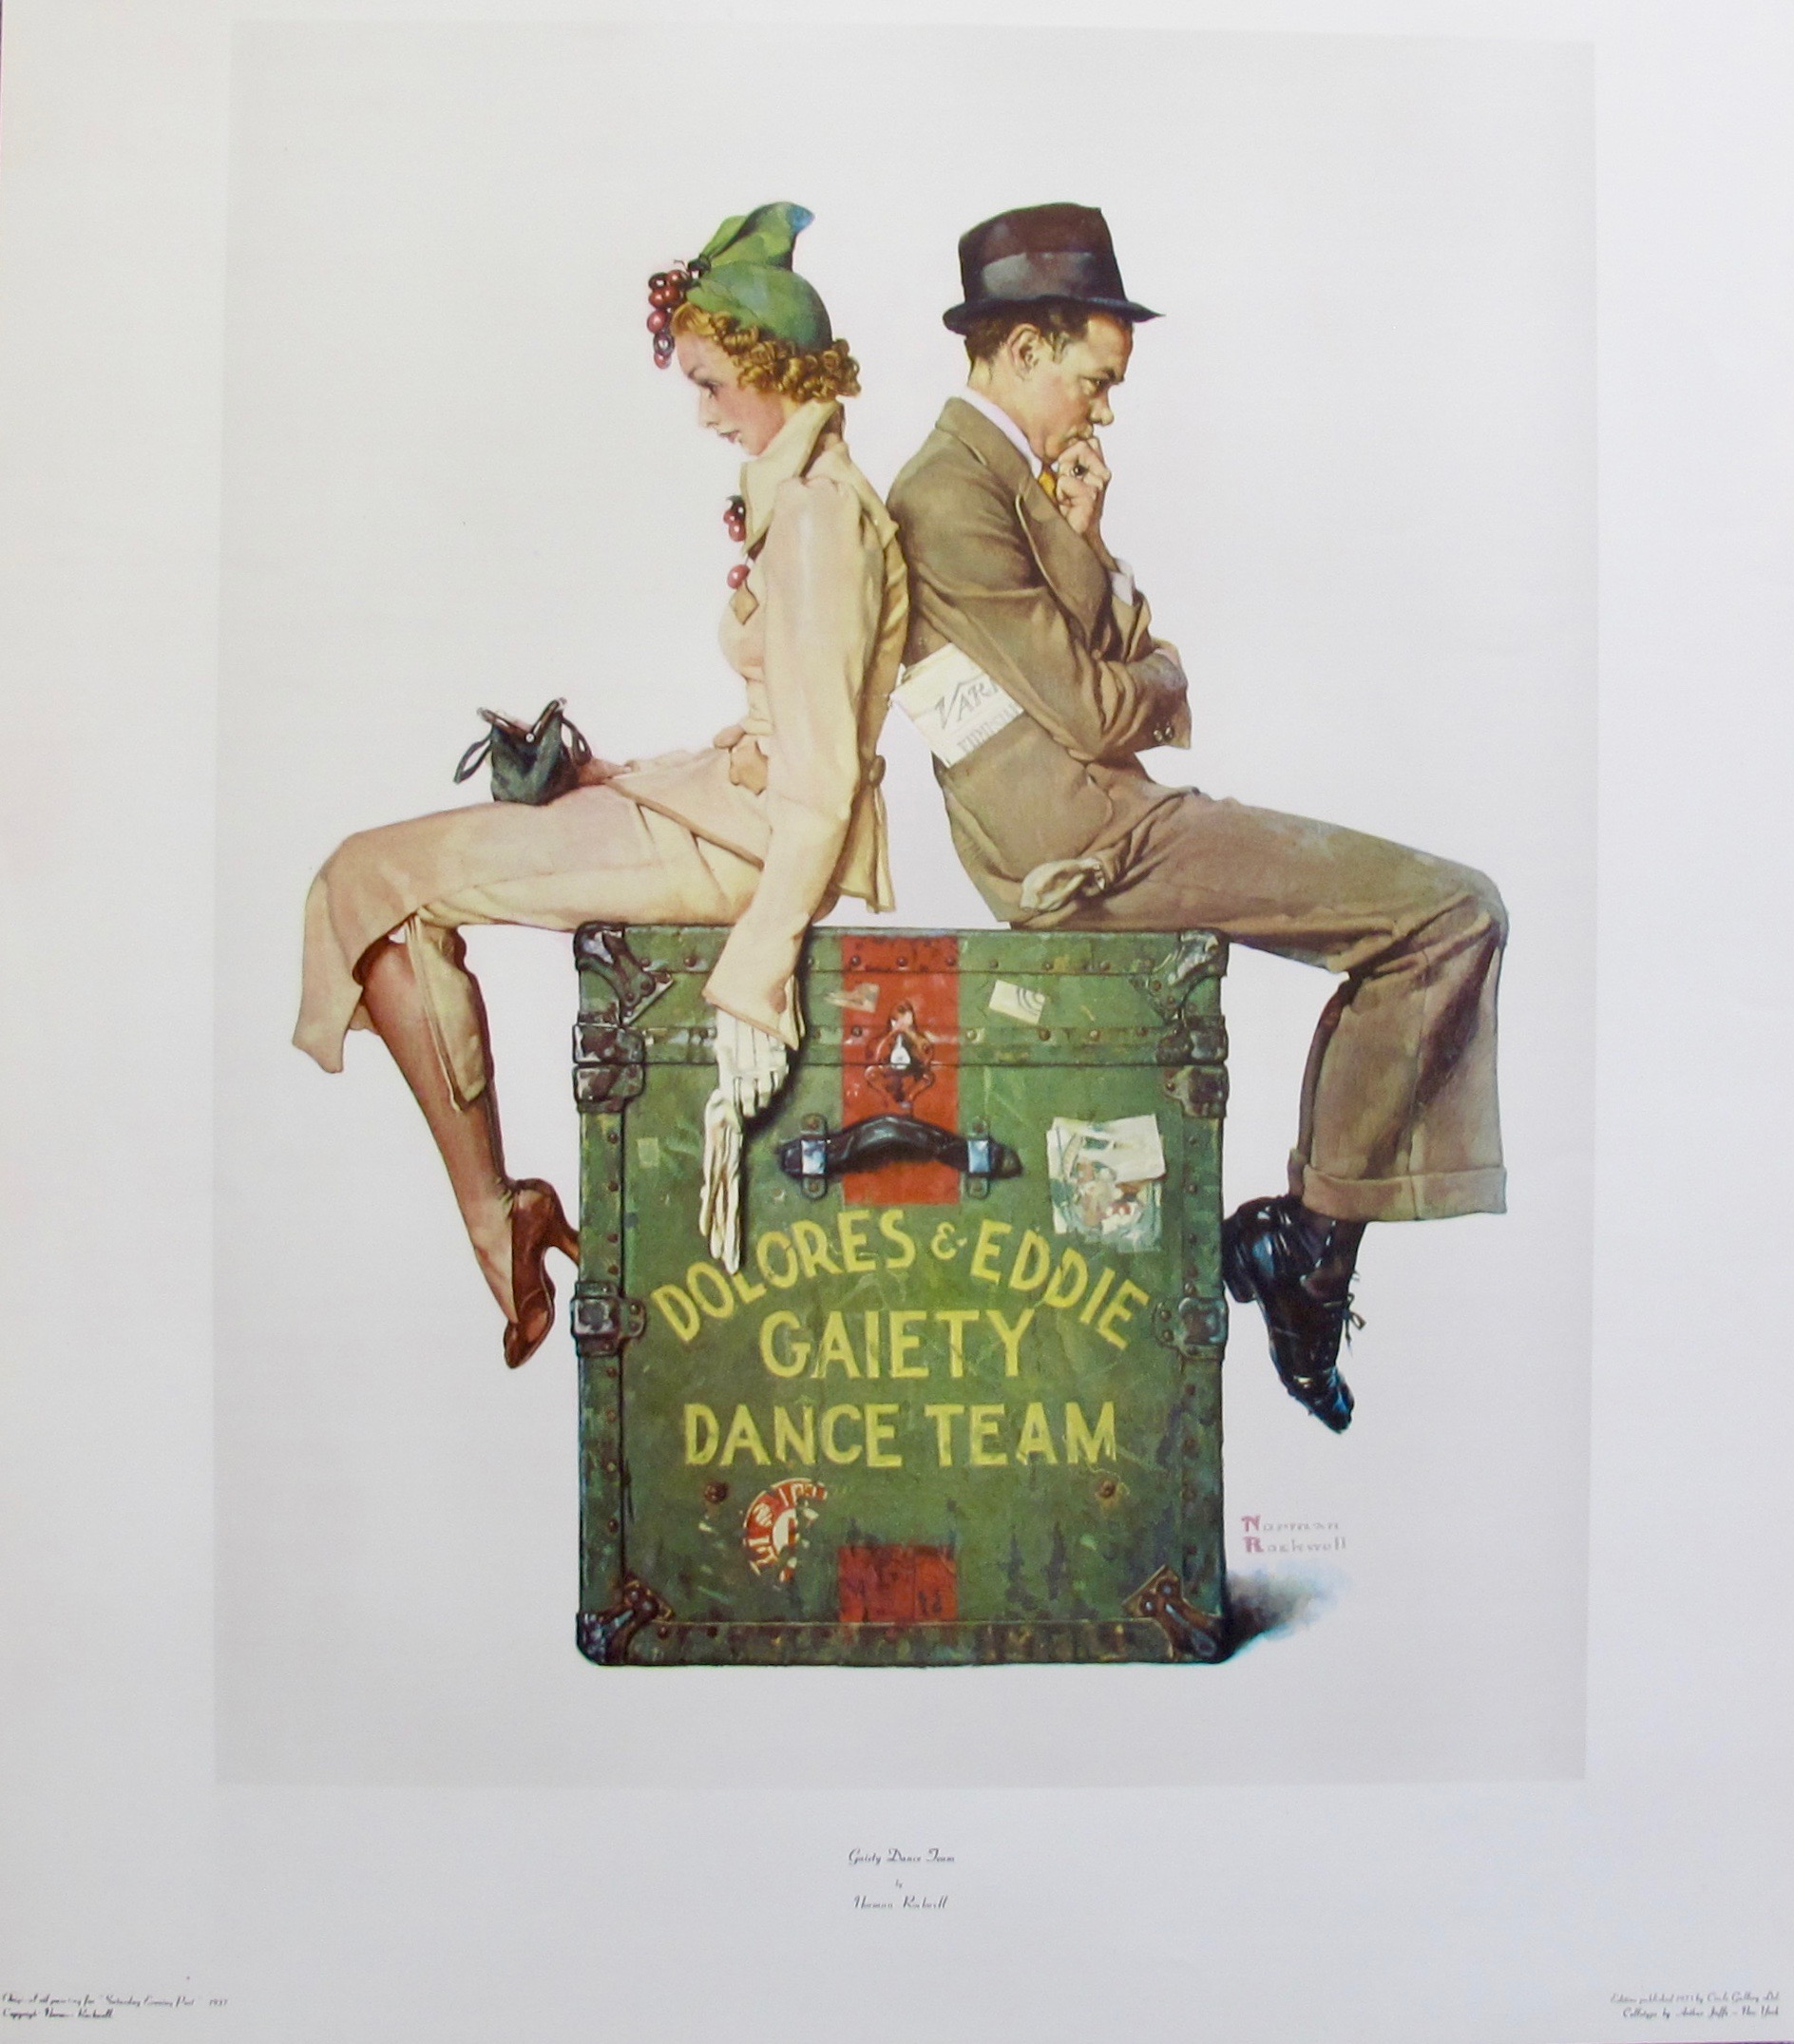 NORMAN ROCKWELL GAIETY DANCE TEAM 1975 Plate Signed Collotype Art